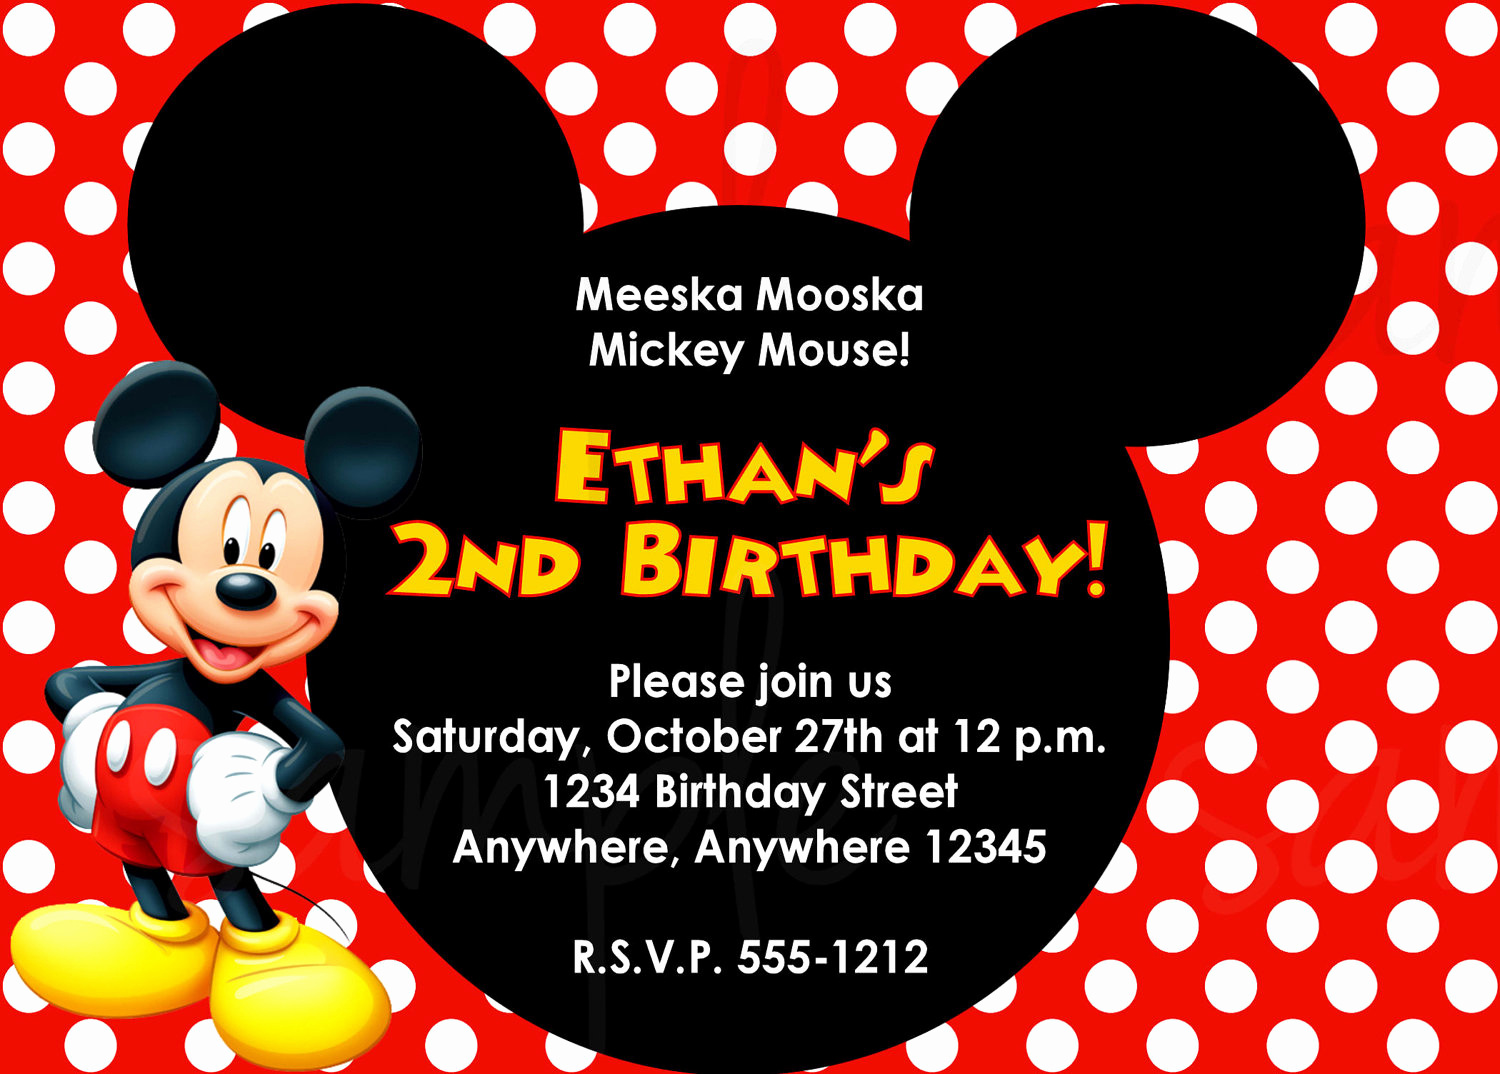 Mickey Mouse Invitation Template New Mickey Mouse Birthday Invitation